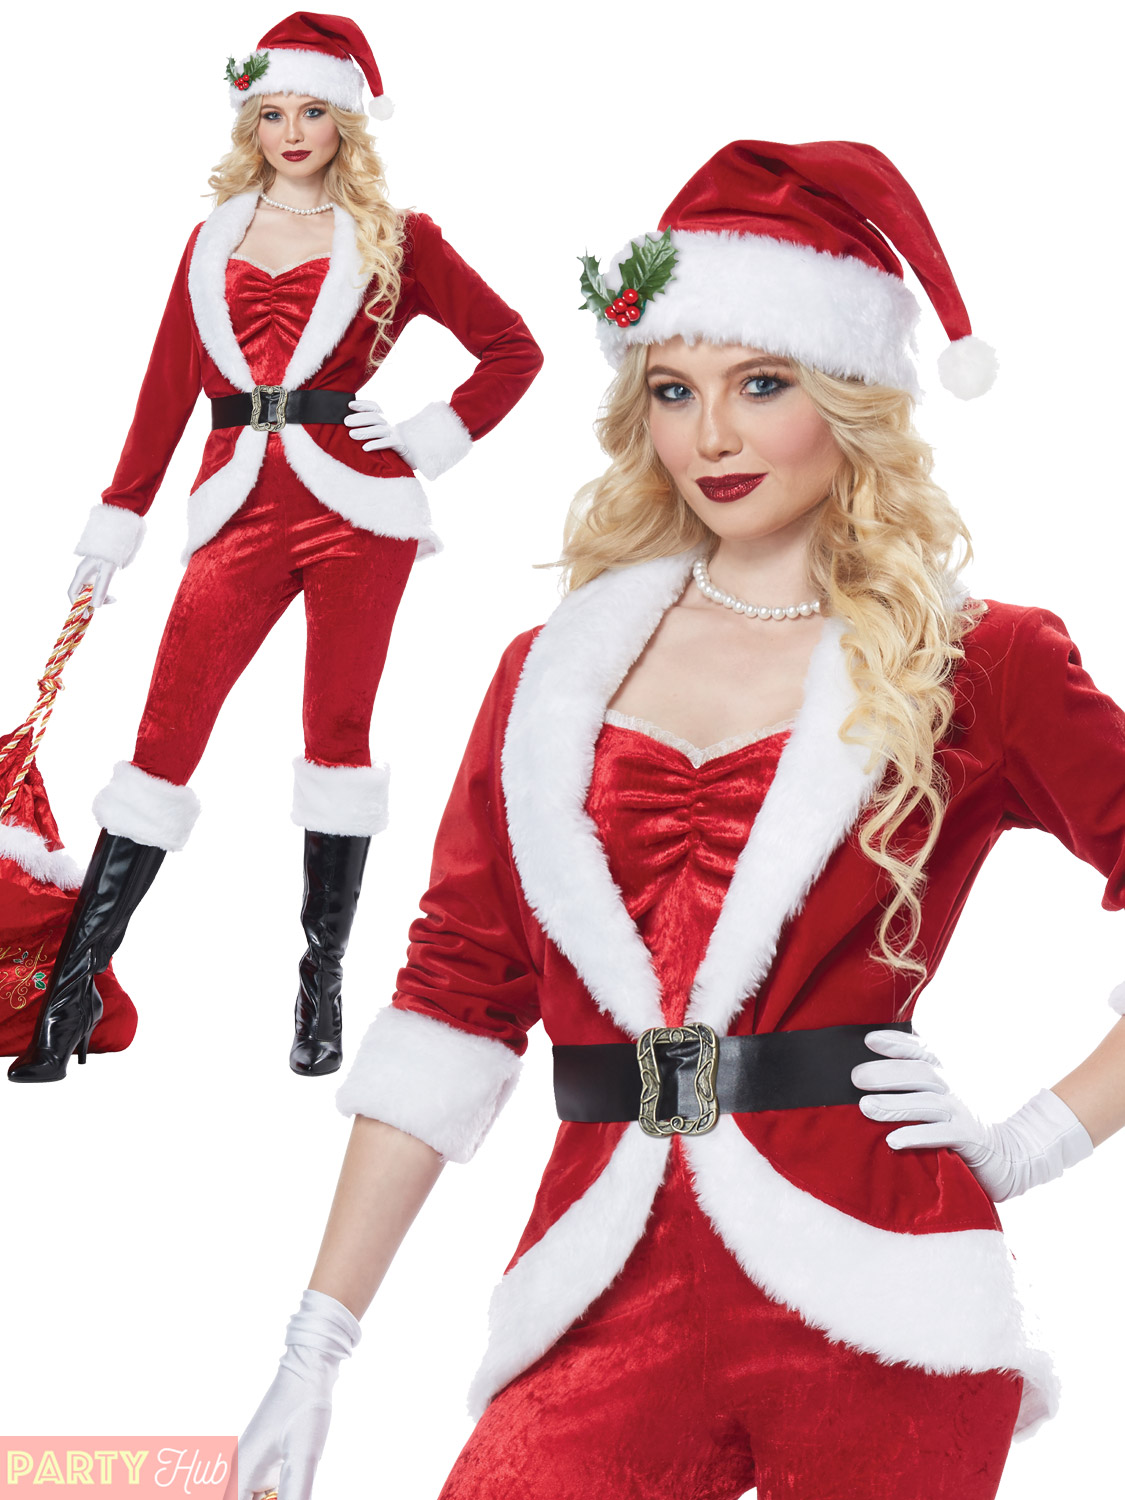 Christmas Fancy Dress.Details About Ladies Sassy Santa Costume Miss Mrs Claus Christmas Fancy Dress Xmas Outfit